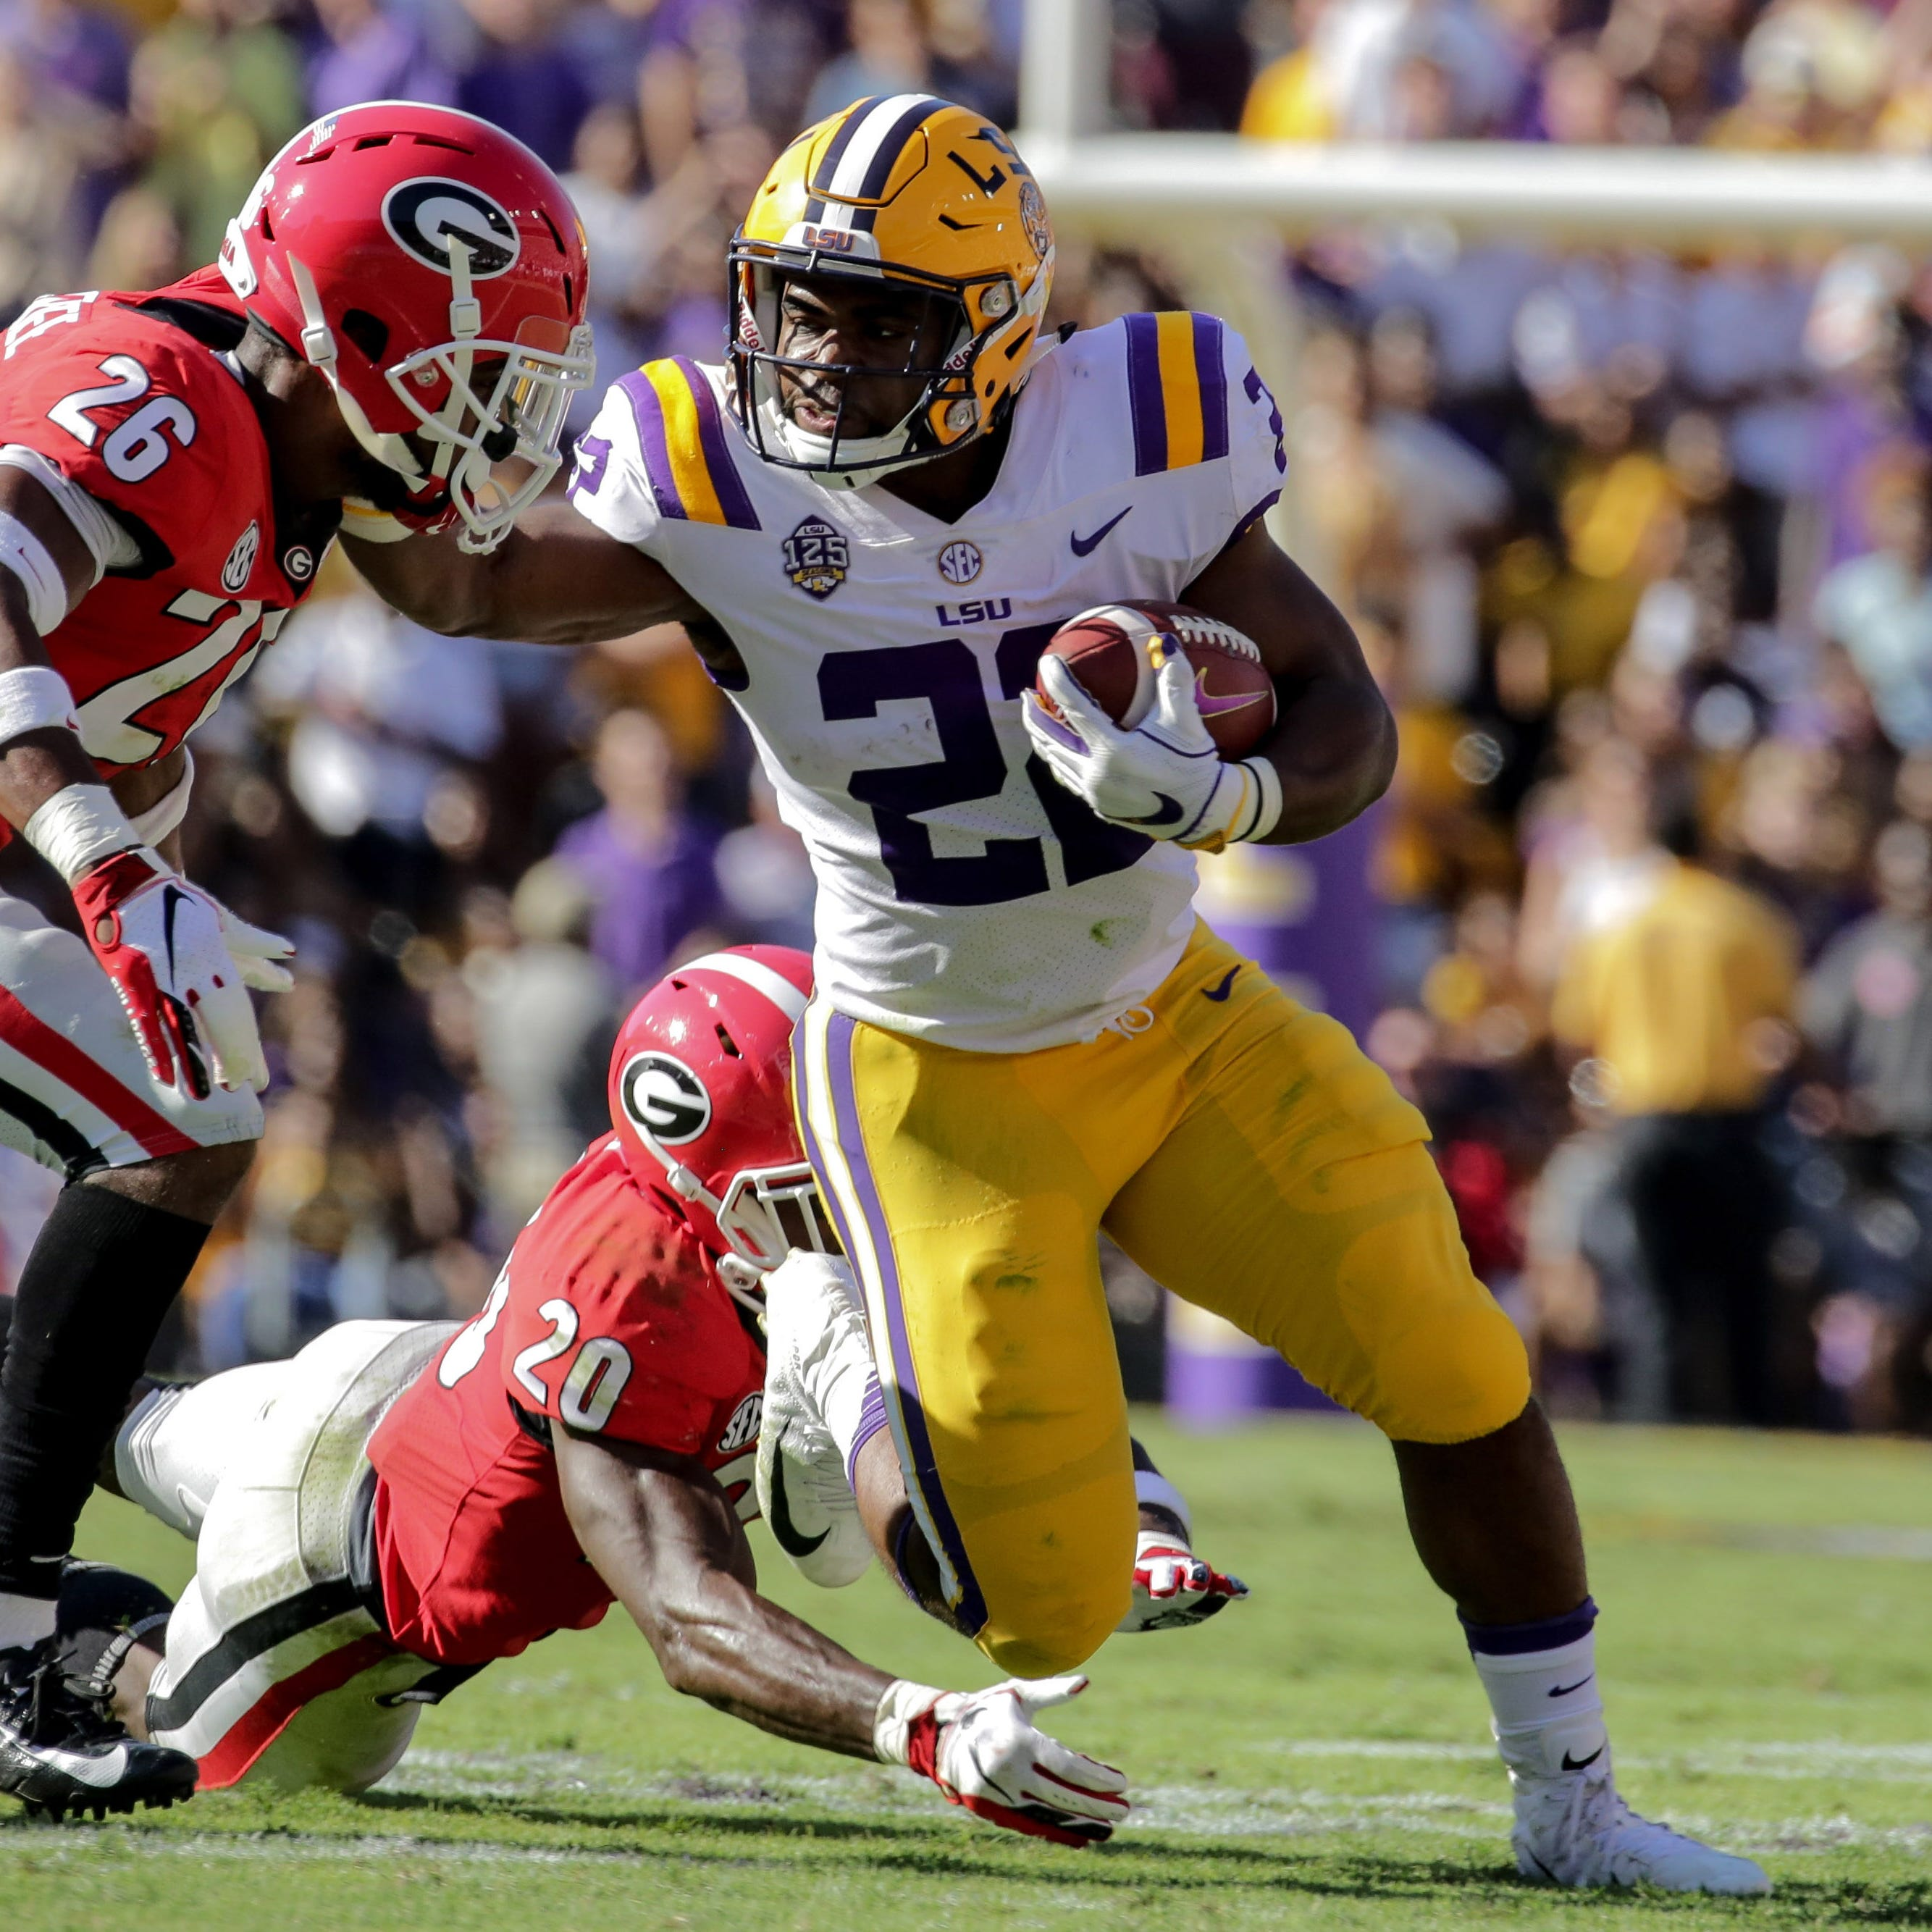 LSU is Back! Tigers jump to No. 5 in both polls after dominating No. 2 Georgia, 36-16